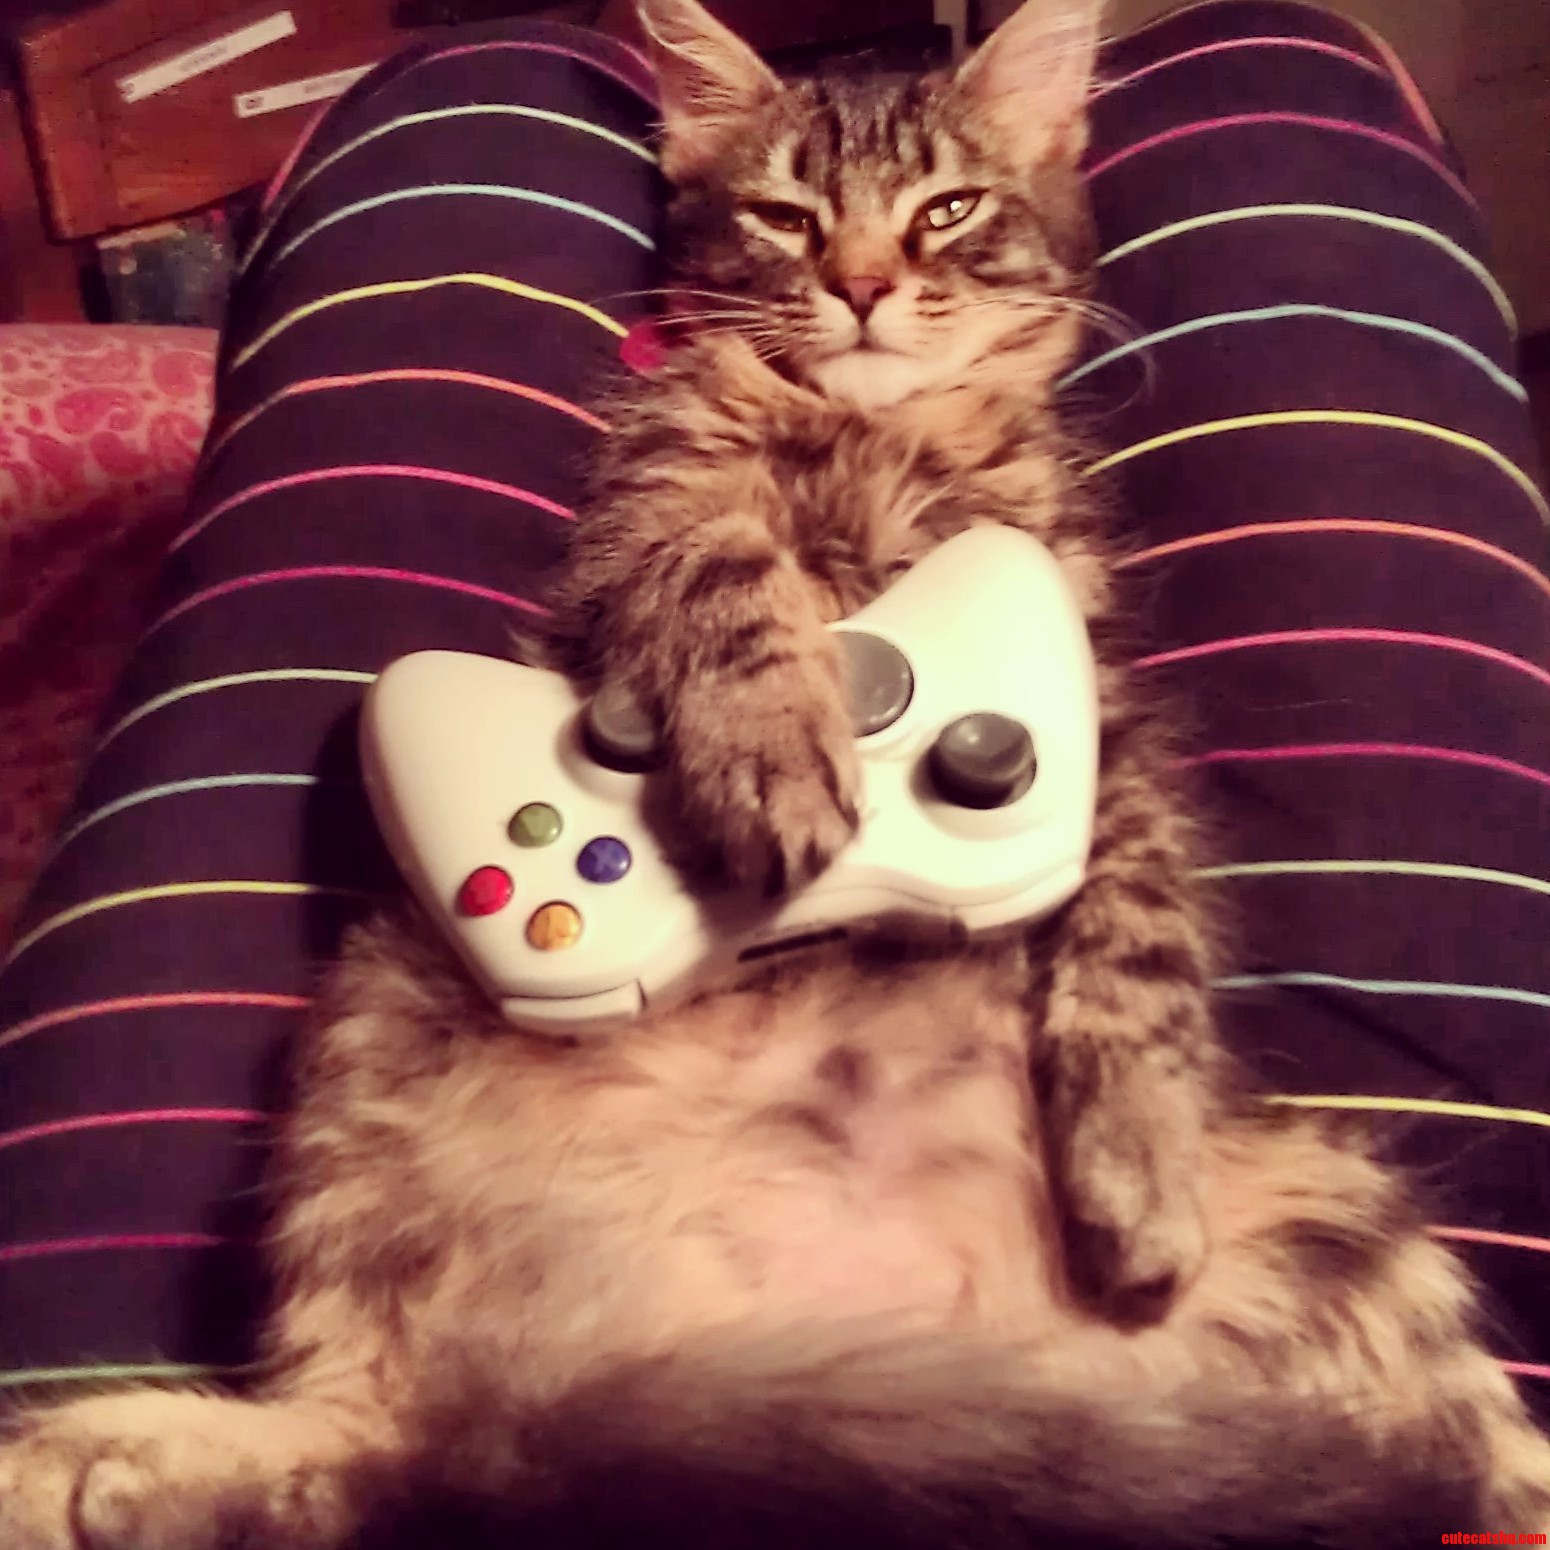 Player Two Has Joined The Game..